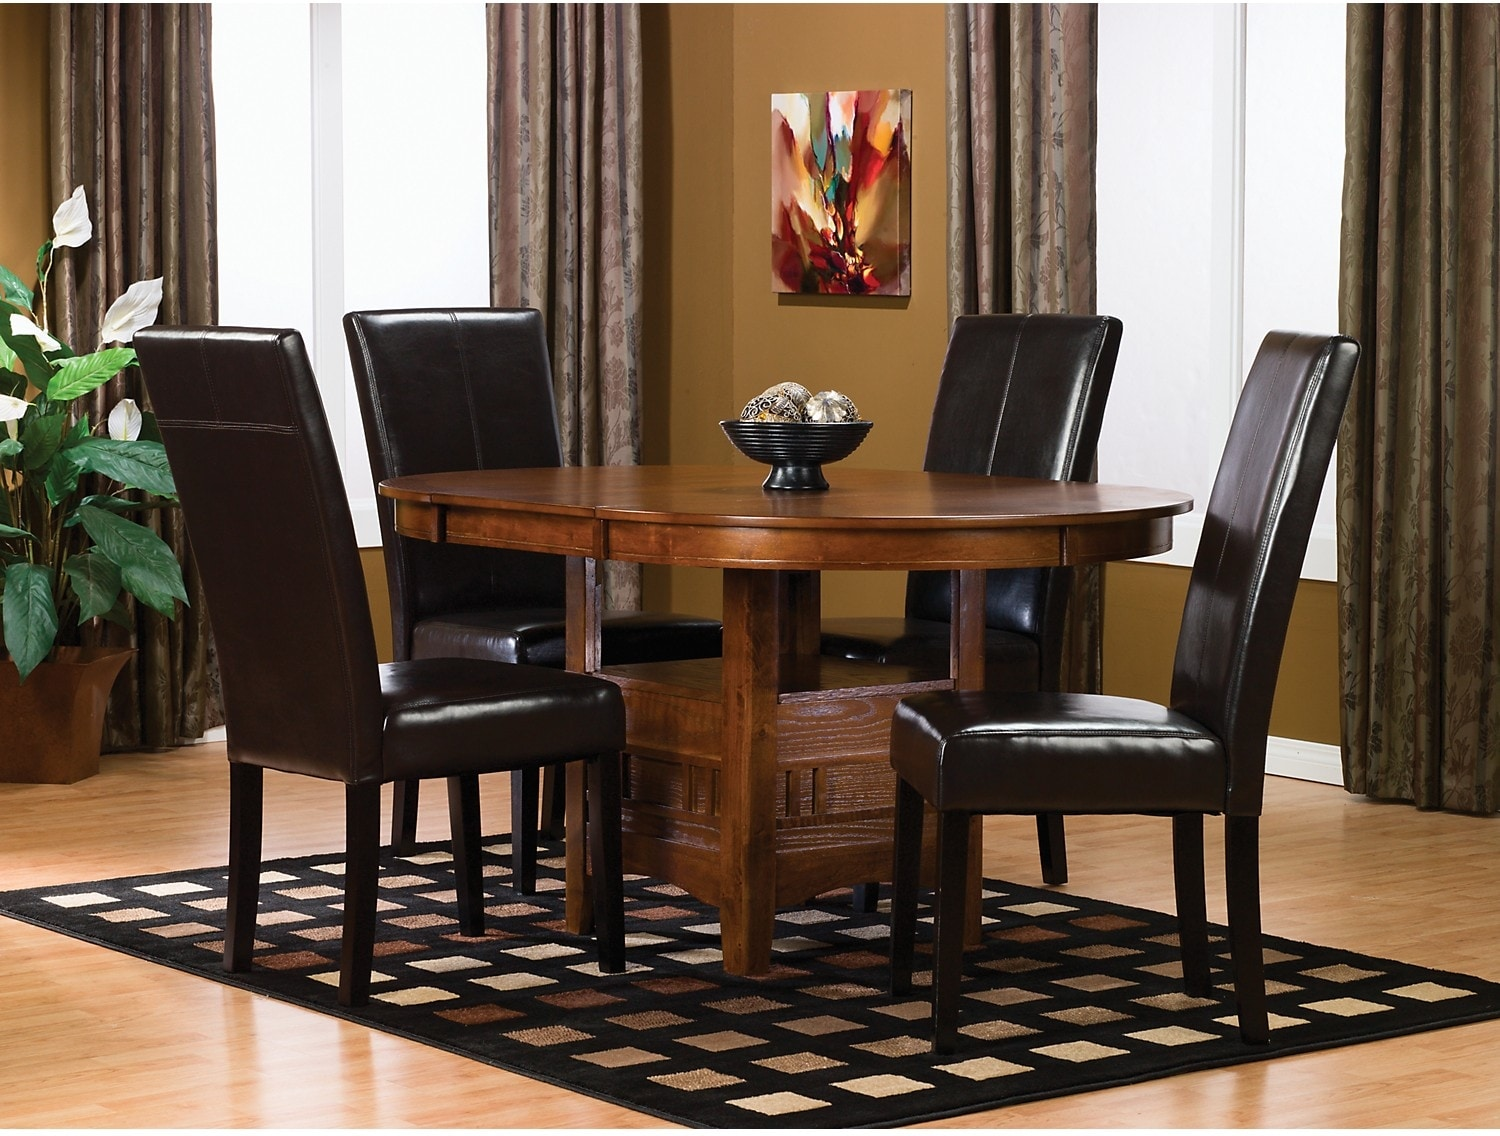 Dining Room Furniture - Dalton 5-Piece Oak Dining Package with Brown Chairs